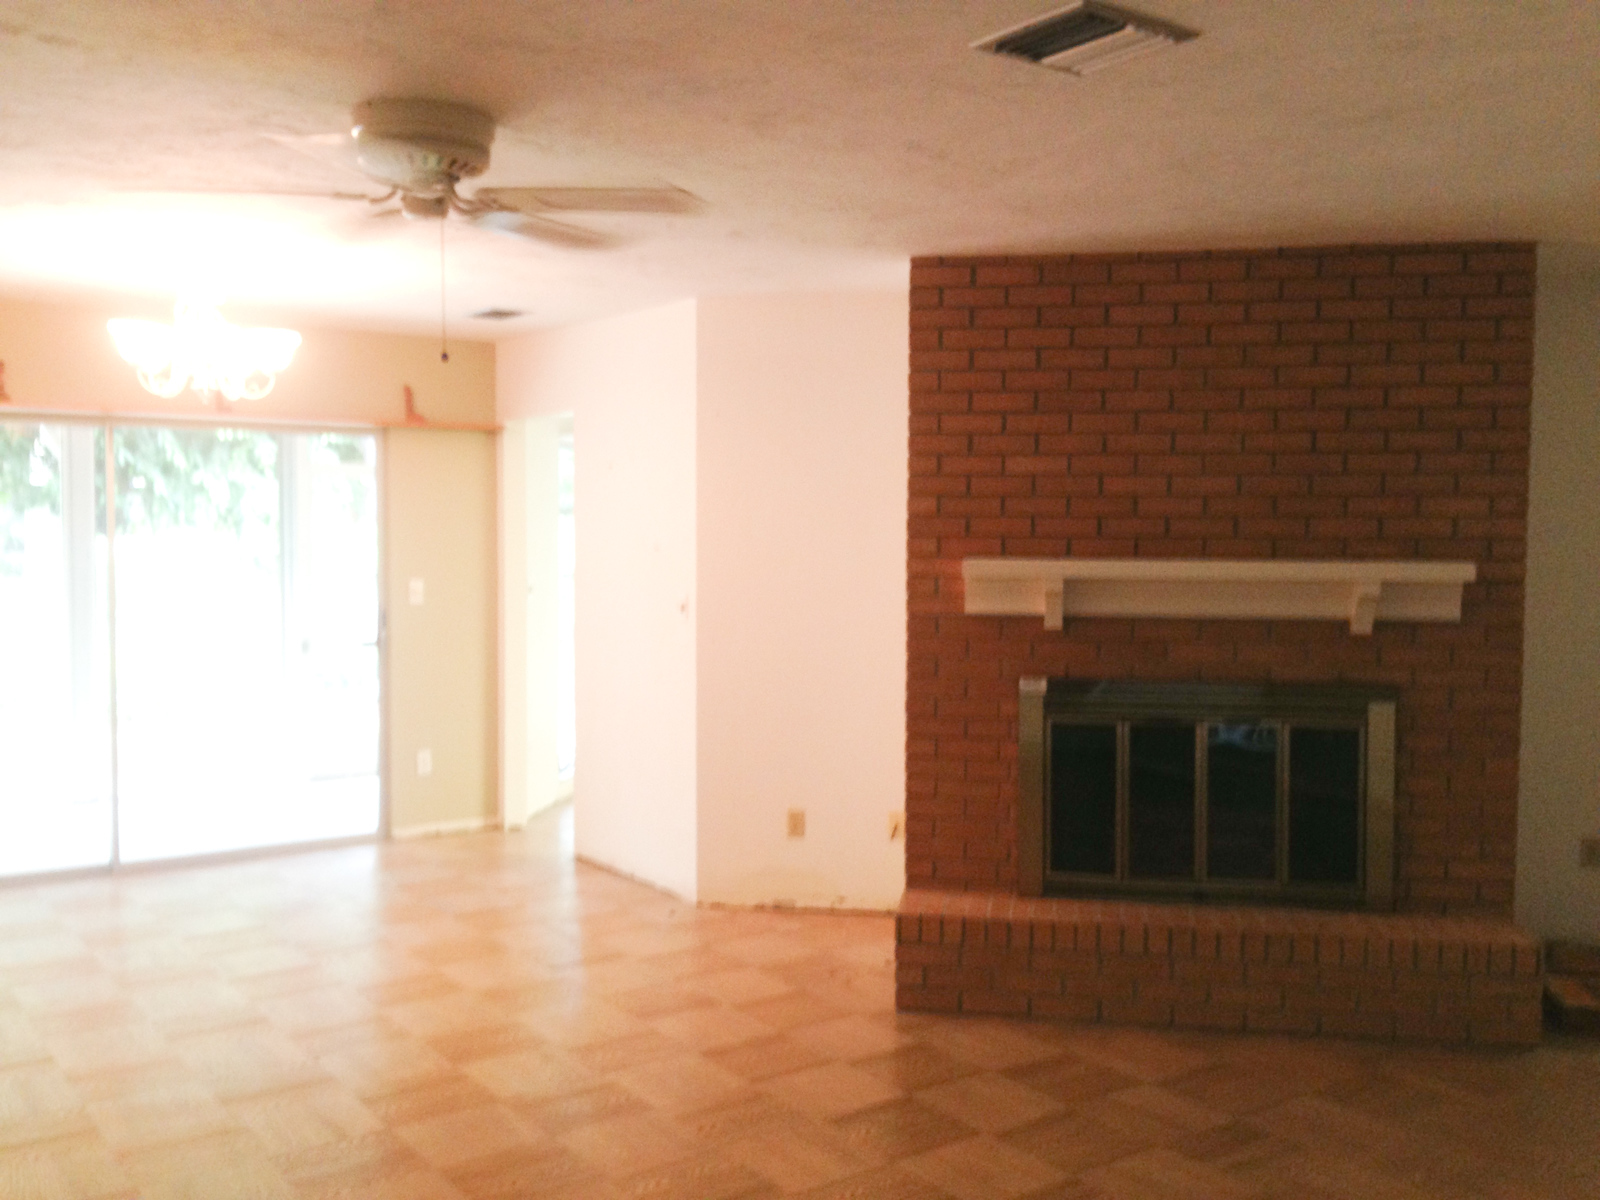 Picture of the fireplace before we moved in